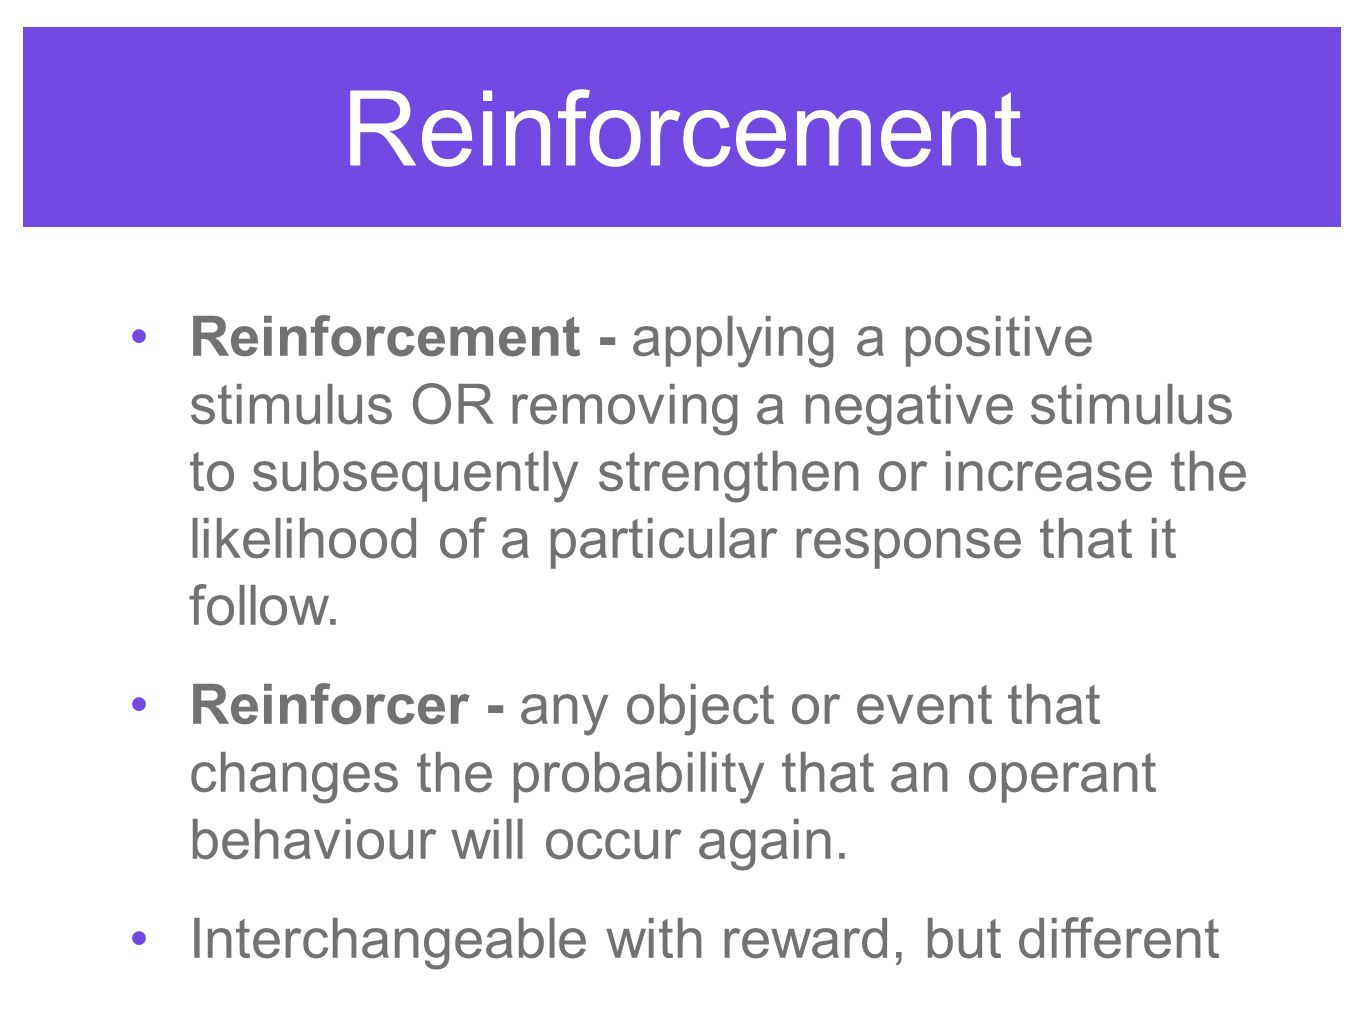 Reinforcement Reinforcement - applying a positive stimulus OR removing a negative stimulus to subsequently strengthen or increase the likelihood of a particular response that it follow.